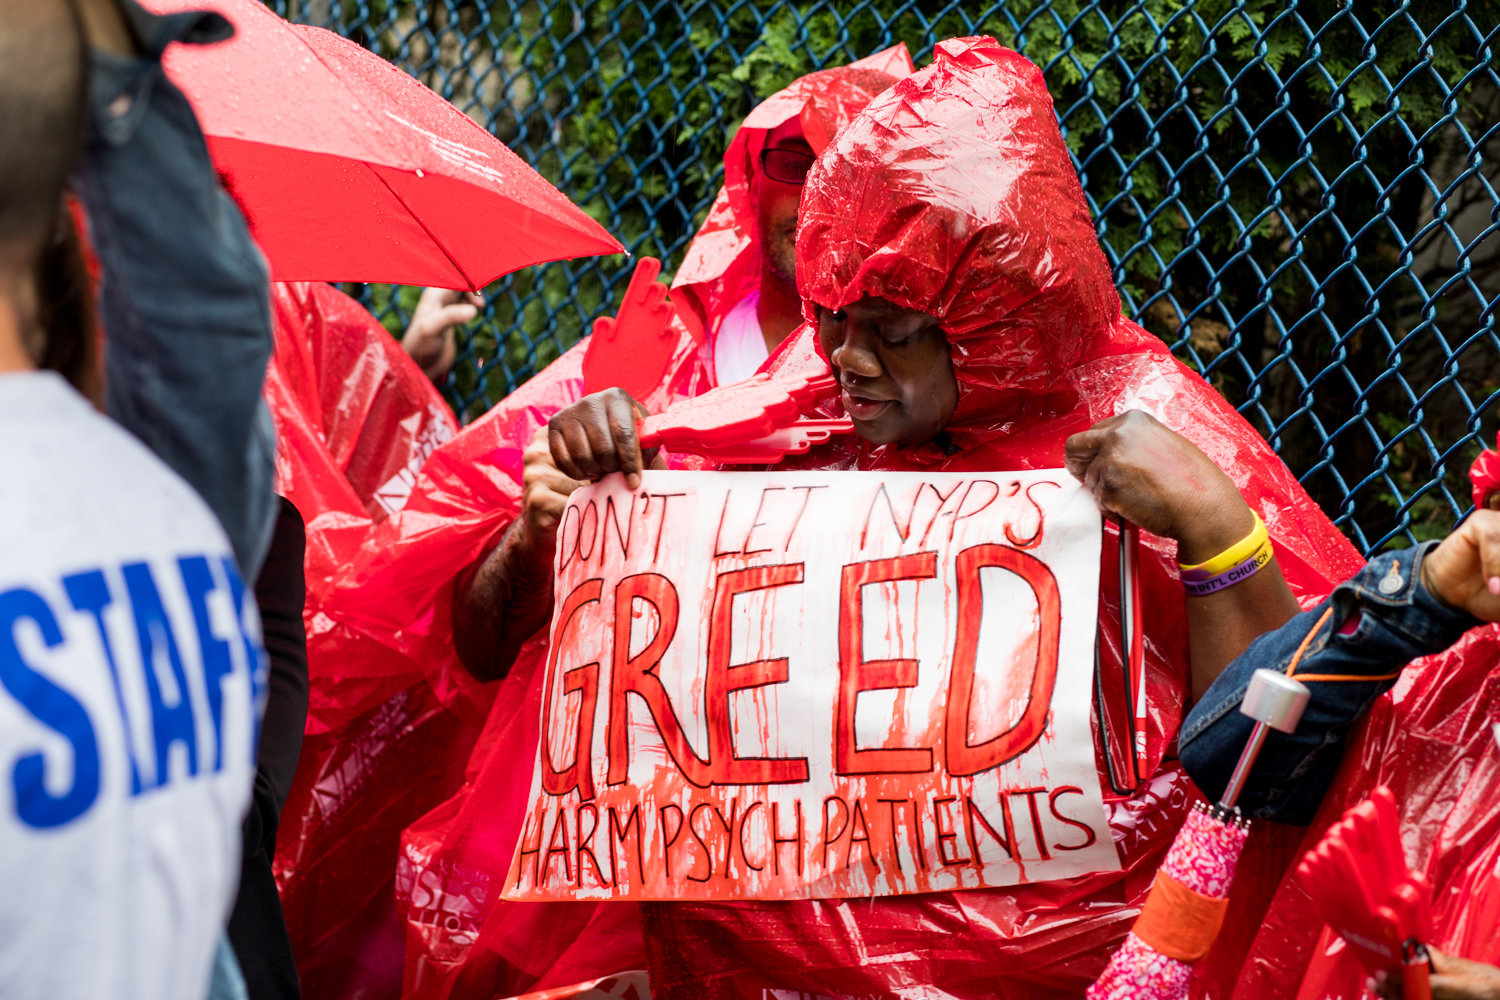 A protester holds a sign that reads 'Don't let NYP's greed harm psych patients' at a rally last year against NewYork-Presbyterian's plan to decertify 30 beds in the psychiatric at the Allen Hospital. Advocates are still fighting to save the unit.